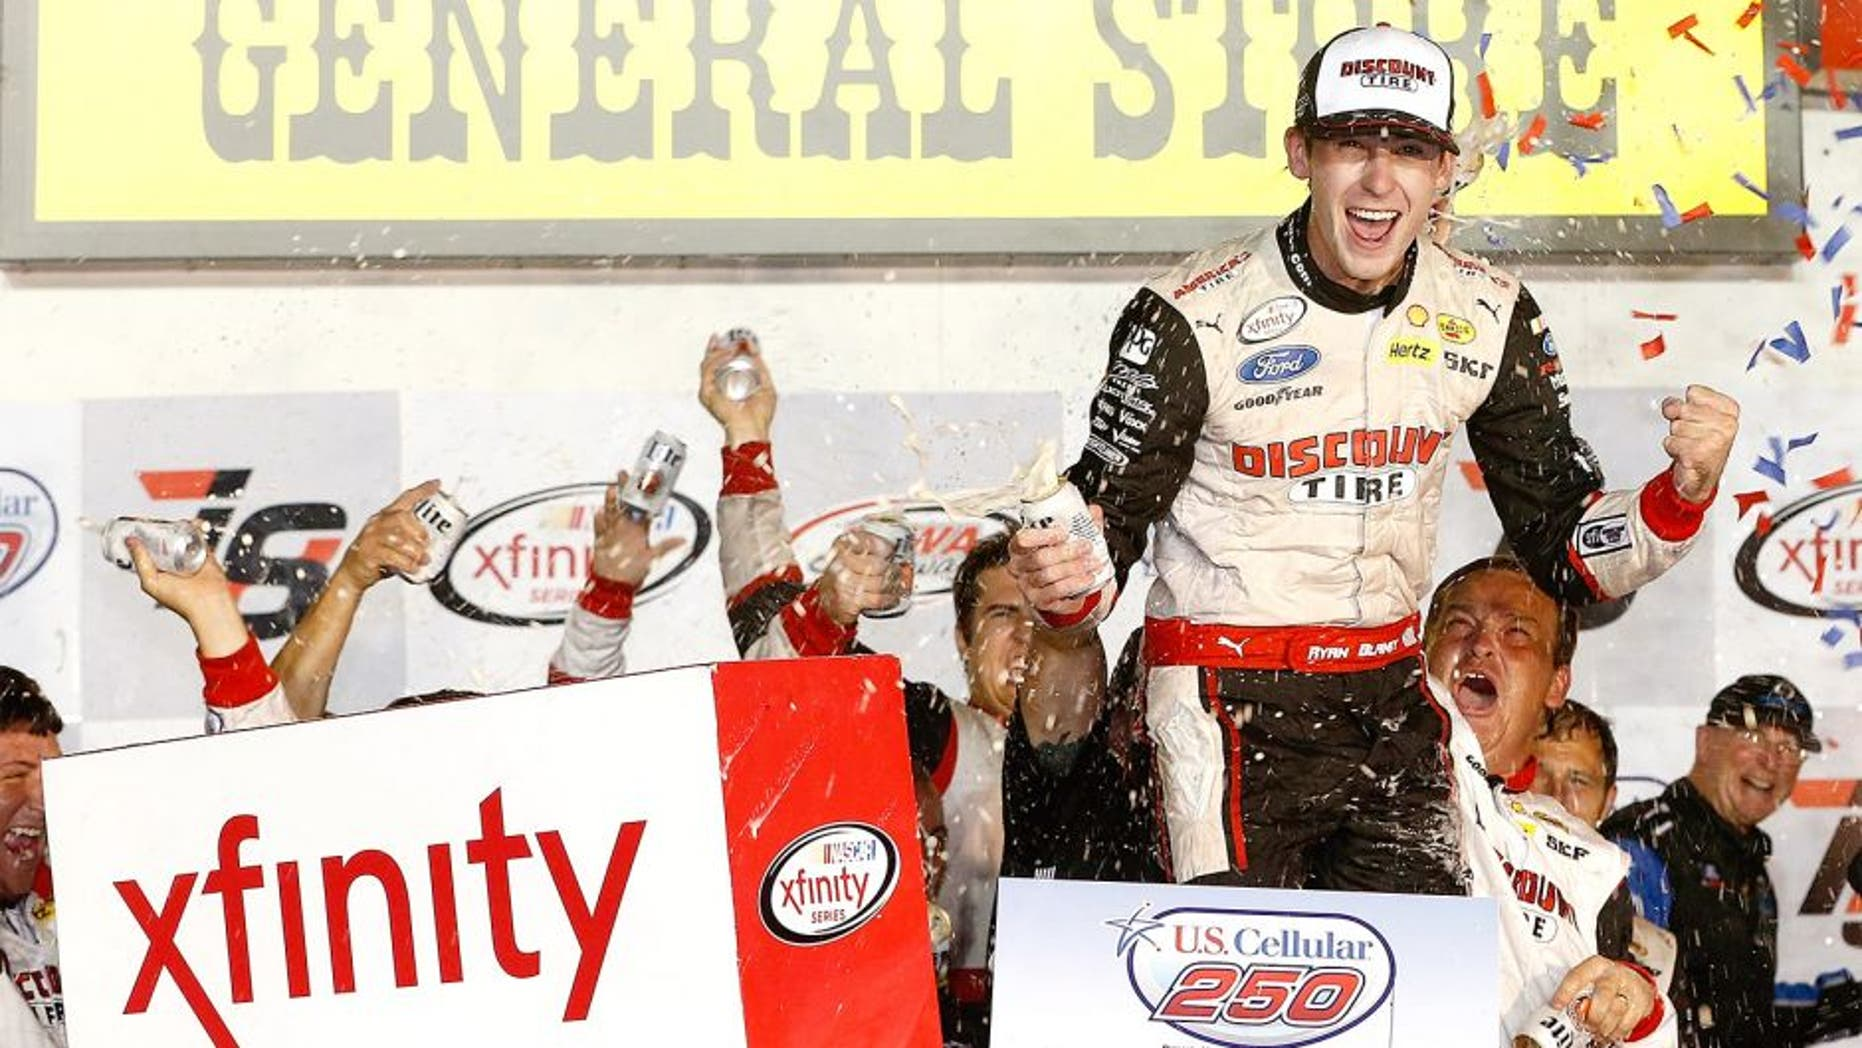 NEWTON, IA - AUGUST 01: Ryan Blaney, driver of the #22 Discount Tire Ford, celebrates in victory lane after winning the NASCAR XFINITY Series U.S. Cellular 250 at Iowa Speedway on August 1, 2015 in Newton, Iowa. (Photo by Brian Lawdermilk/NASCAR via Getty Images)